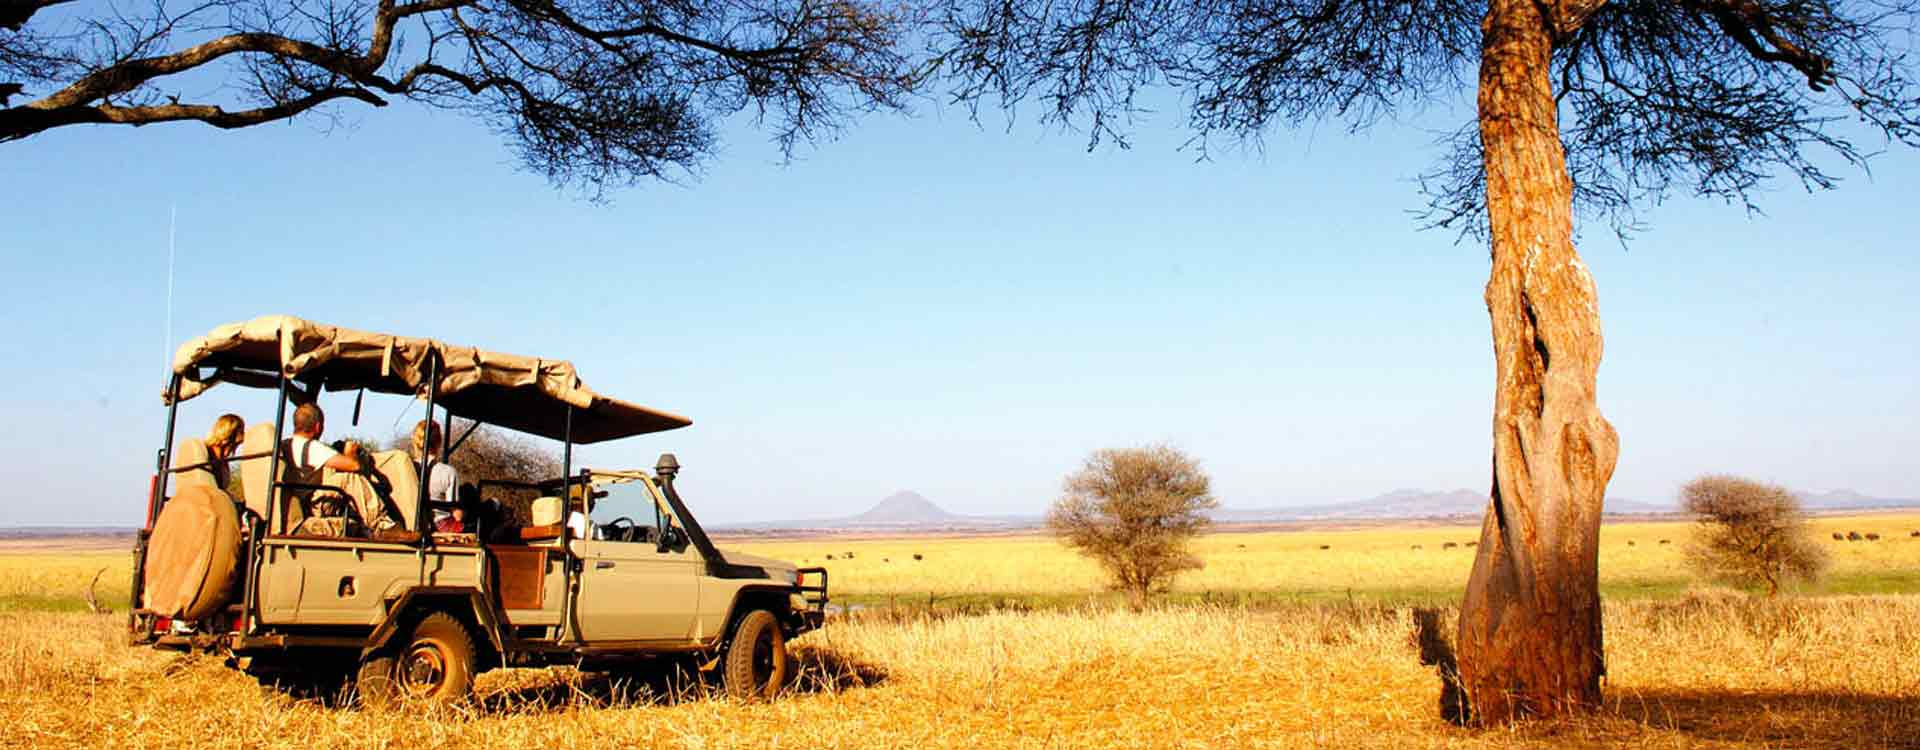 Tanzania Travel Tips